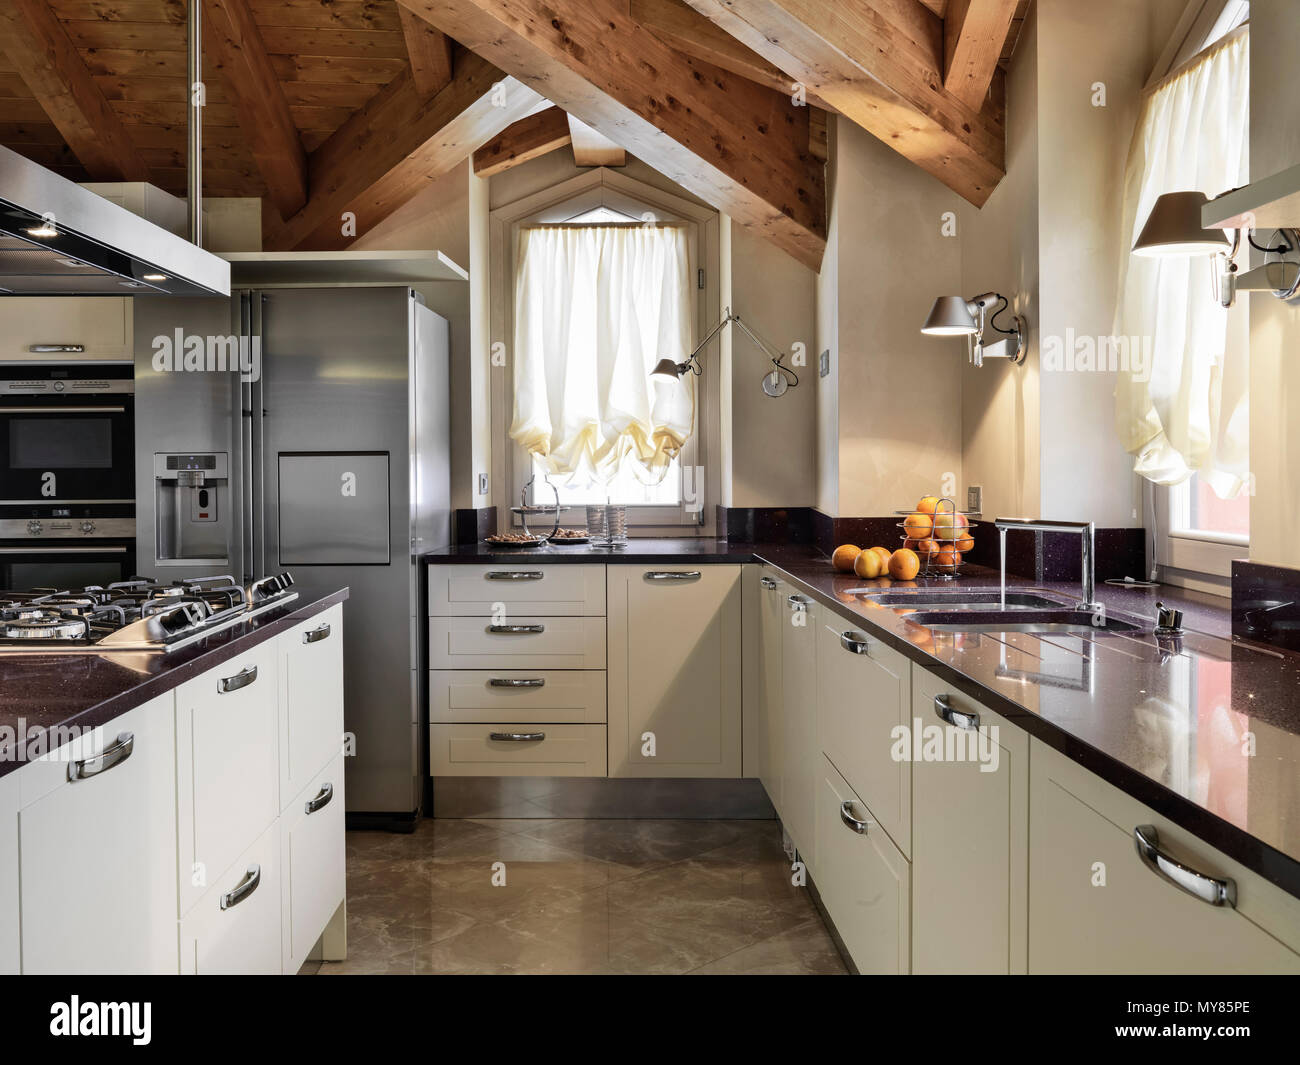 modern kitchen interior in the attic room with kitchen island and wooden ceiling - Stock Image